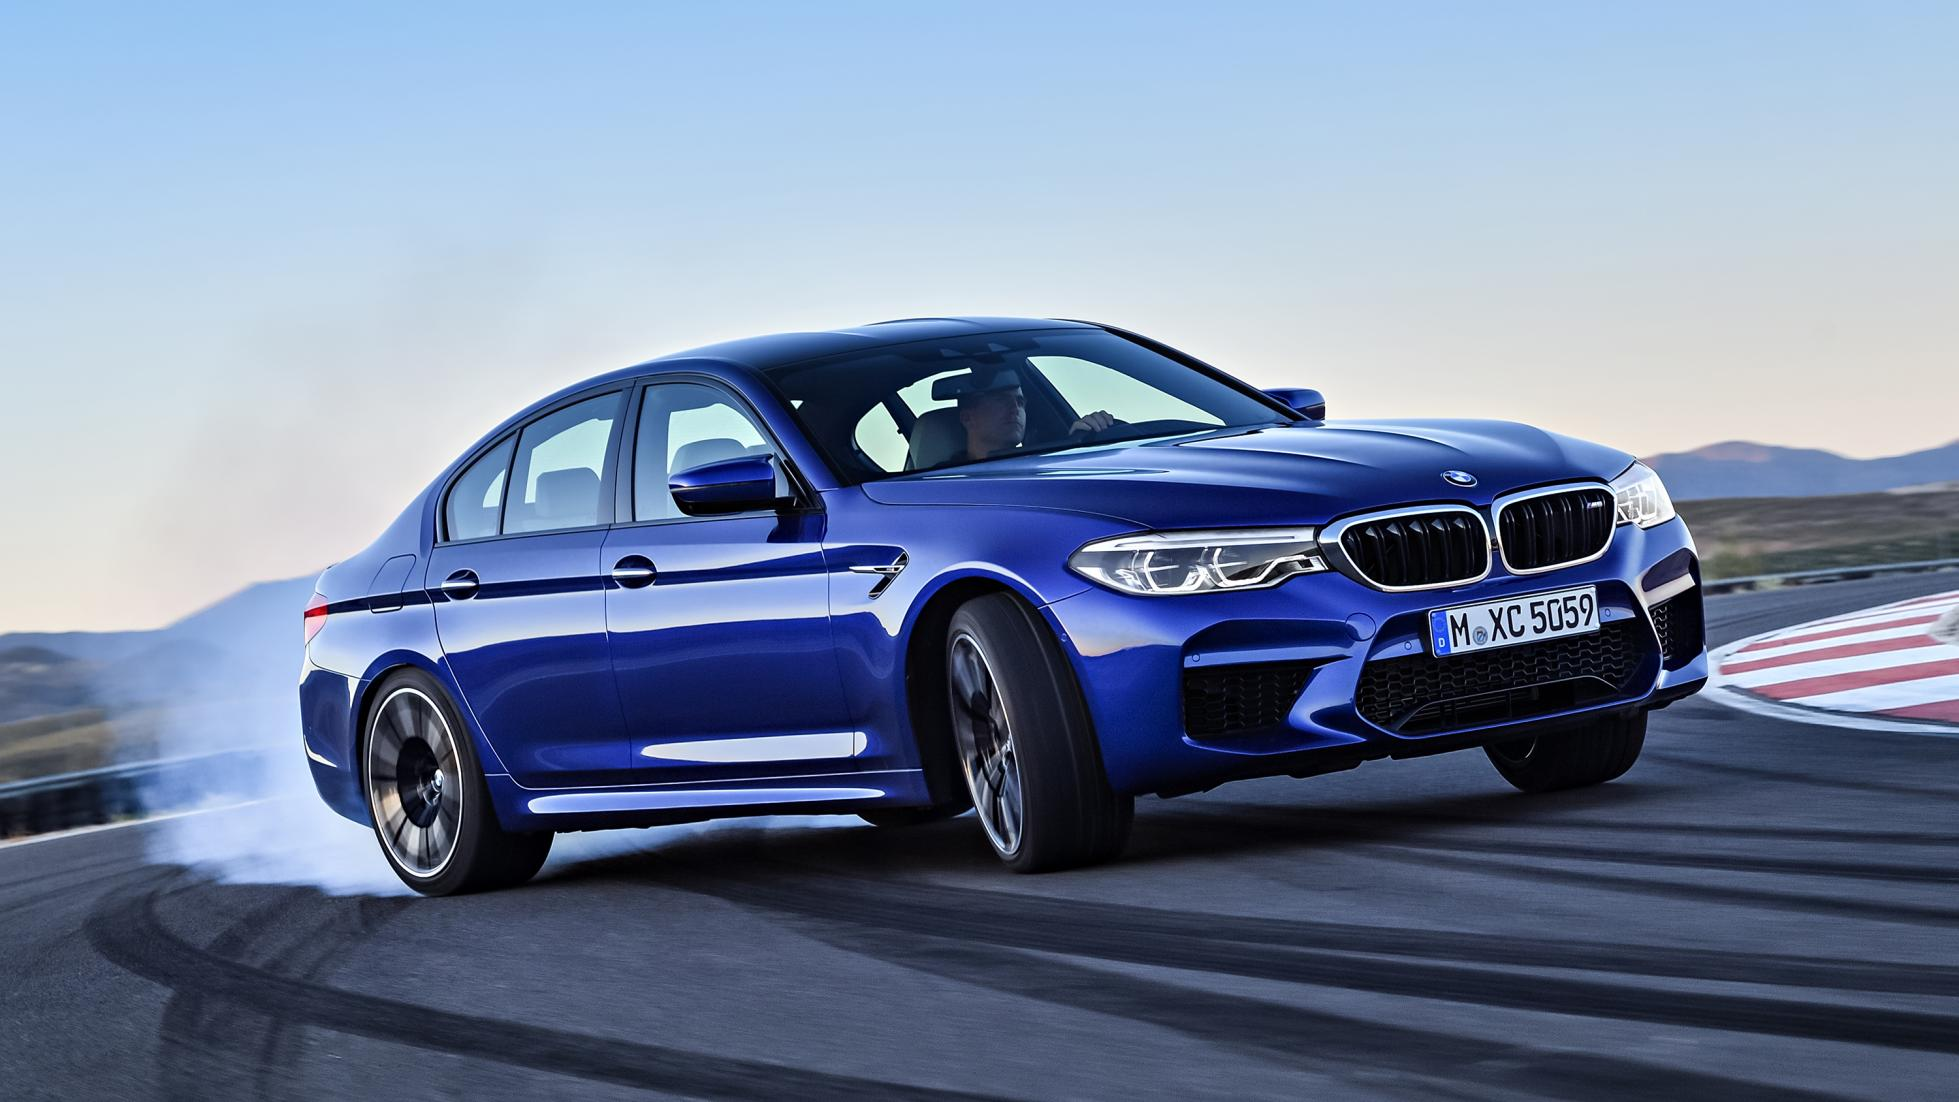 p90272990_highres_the-new-bmw-m5-08-20